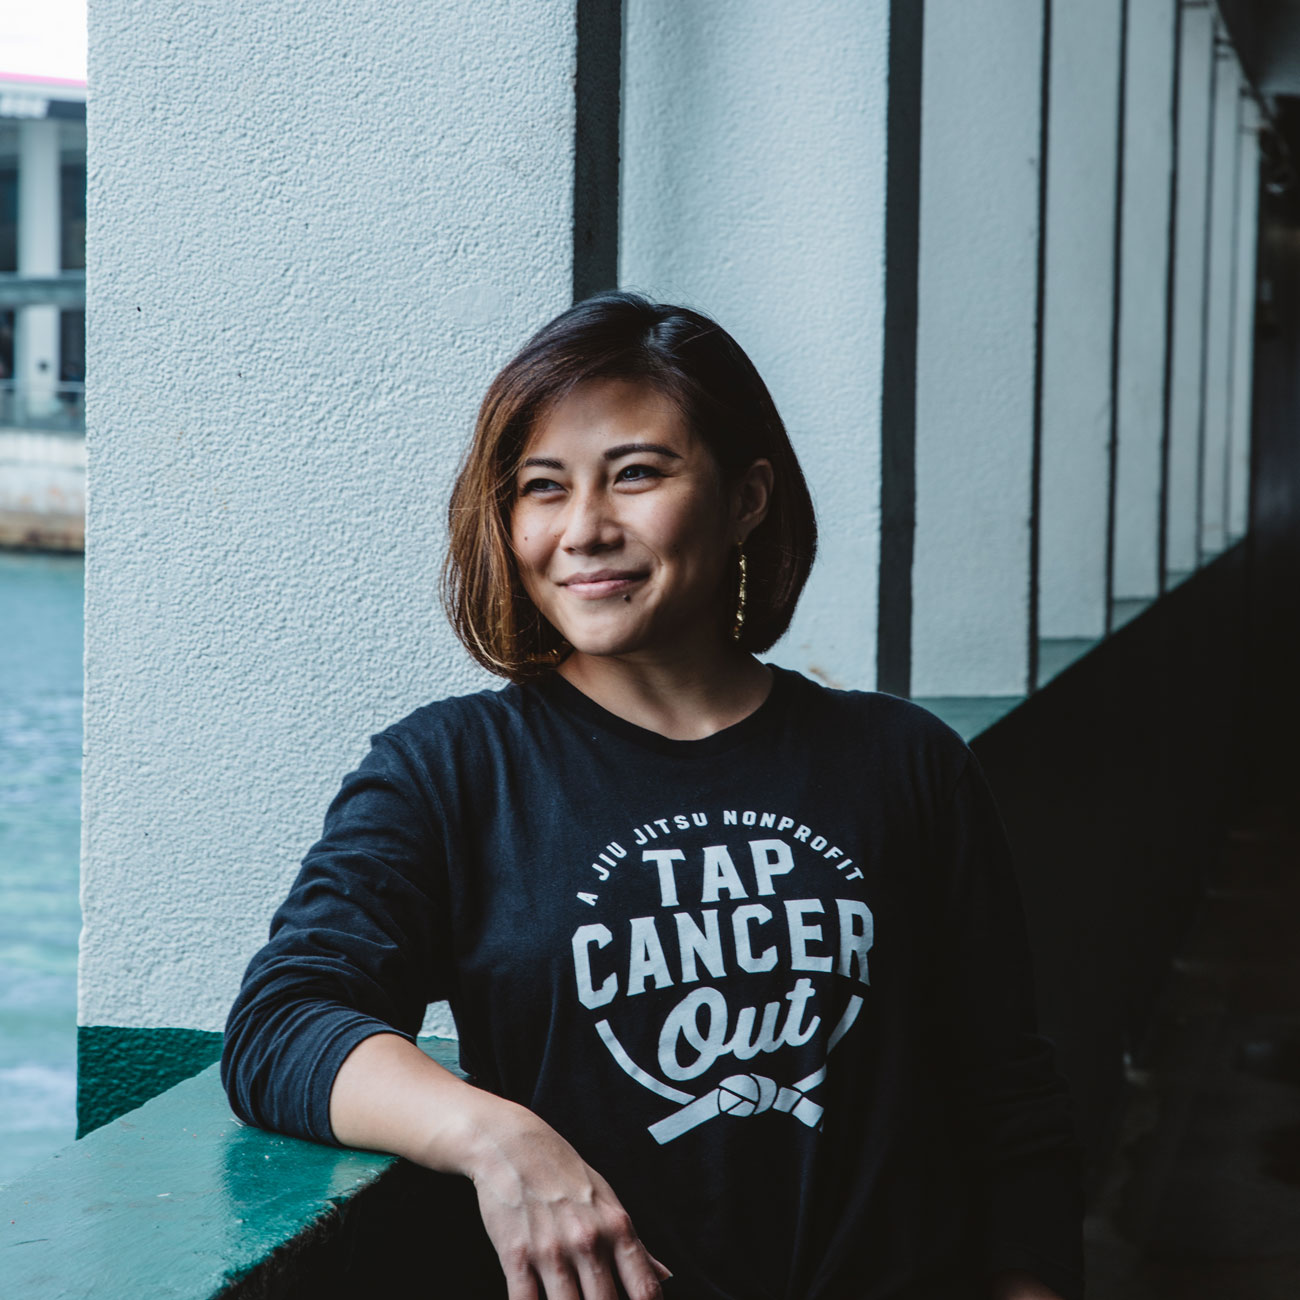 Podcaster, fitness coach and fitness performer, and cancer survivor Emily Tan